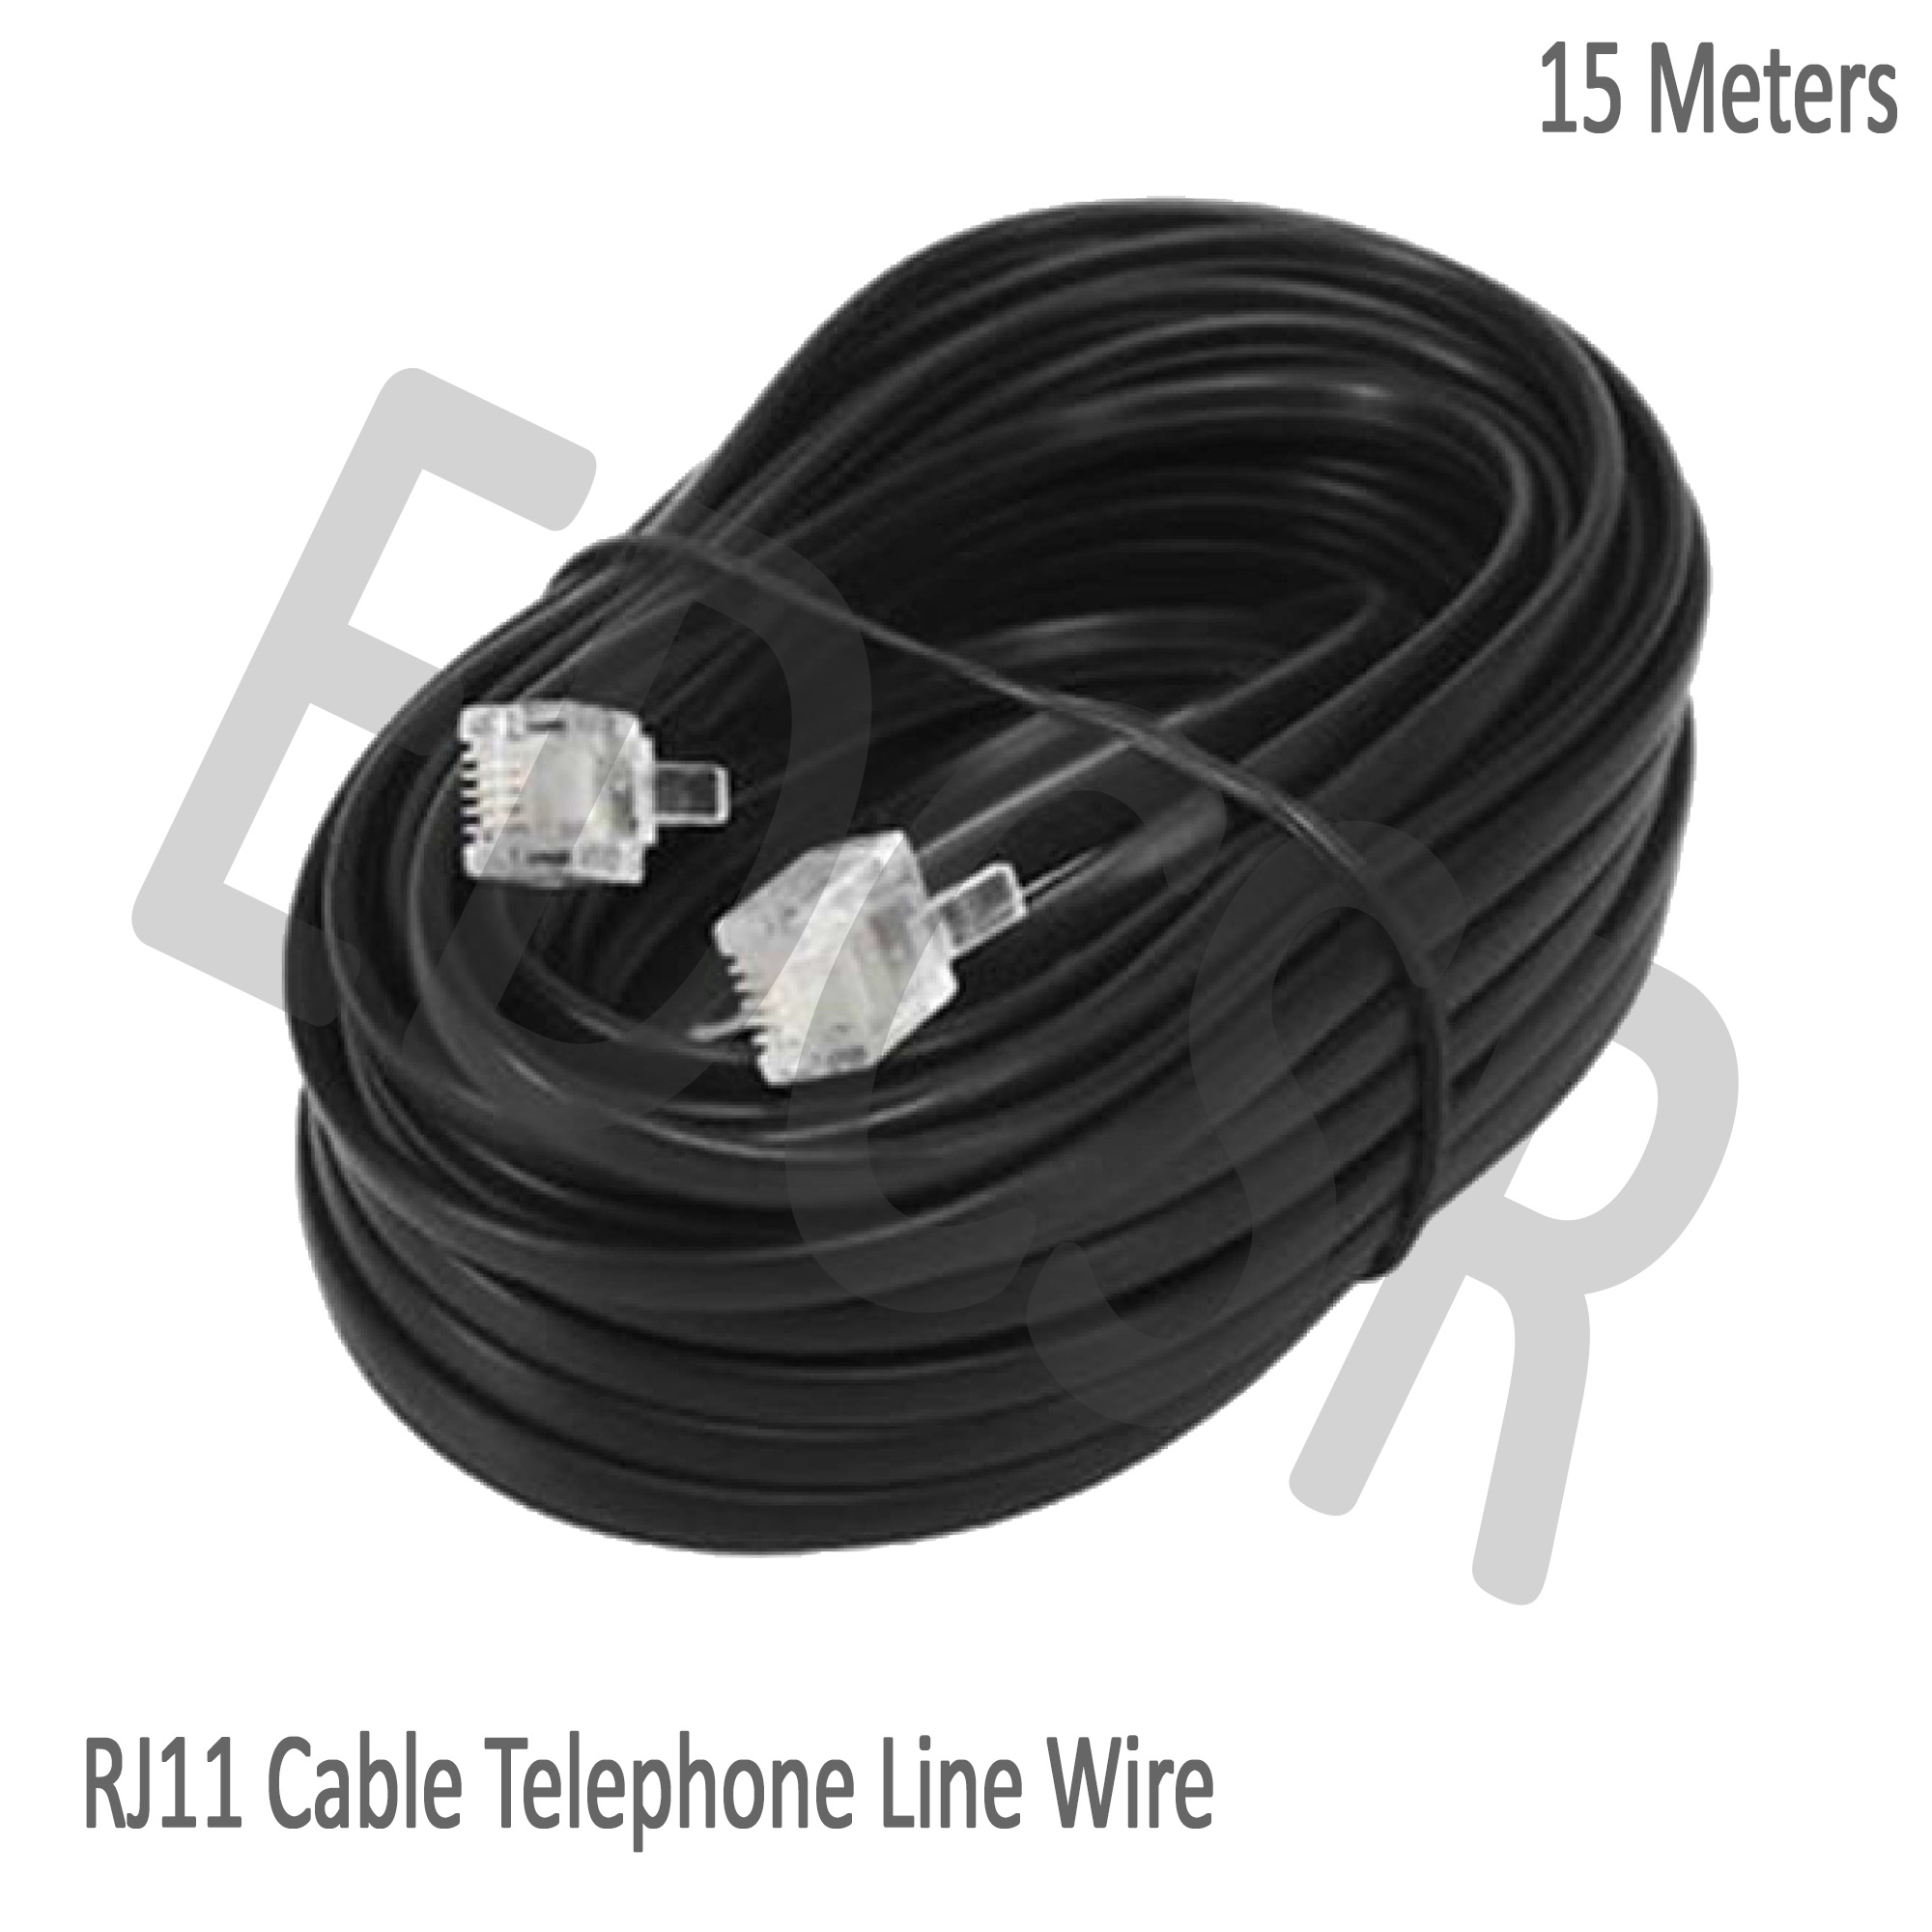 RJ11 Cable Telephone Line Wire - 15 Meters (Black) on telephone equipment, cable wiring, telephone handset holder, telephone plugs, telephone transmitter, telephone components, telephone computer, telephone tools, telephone switch, telephone number, telephone systems, data wiring, telephone design, telephone diagram, telephone blue, telephone cables, computer network wiring, telephone connectors, telephone relay, telephone wires, telephone schematic, computer wiring, telephone service, low voltage wiring, electrical wiring, telephone jacks, telephone panel board, telephone repair, telephone communication system, telephone data lines, telephone line work, telephone installation, telephone operators,